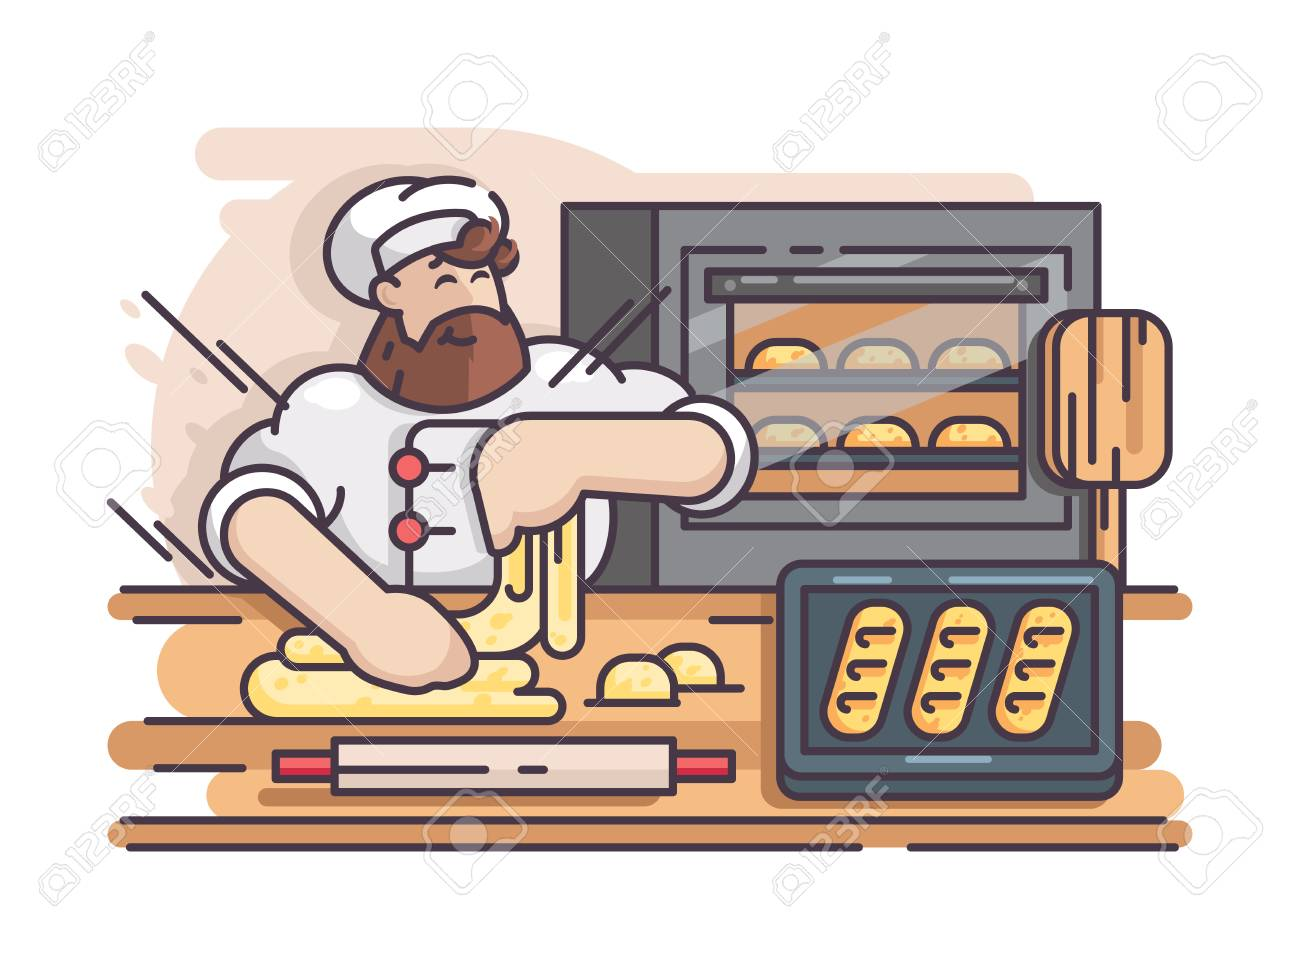 Baker kneads and cooking dough. Cook prepares pastries in kitchen. Vector illustration - 95195795